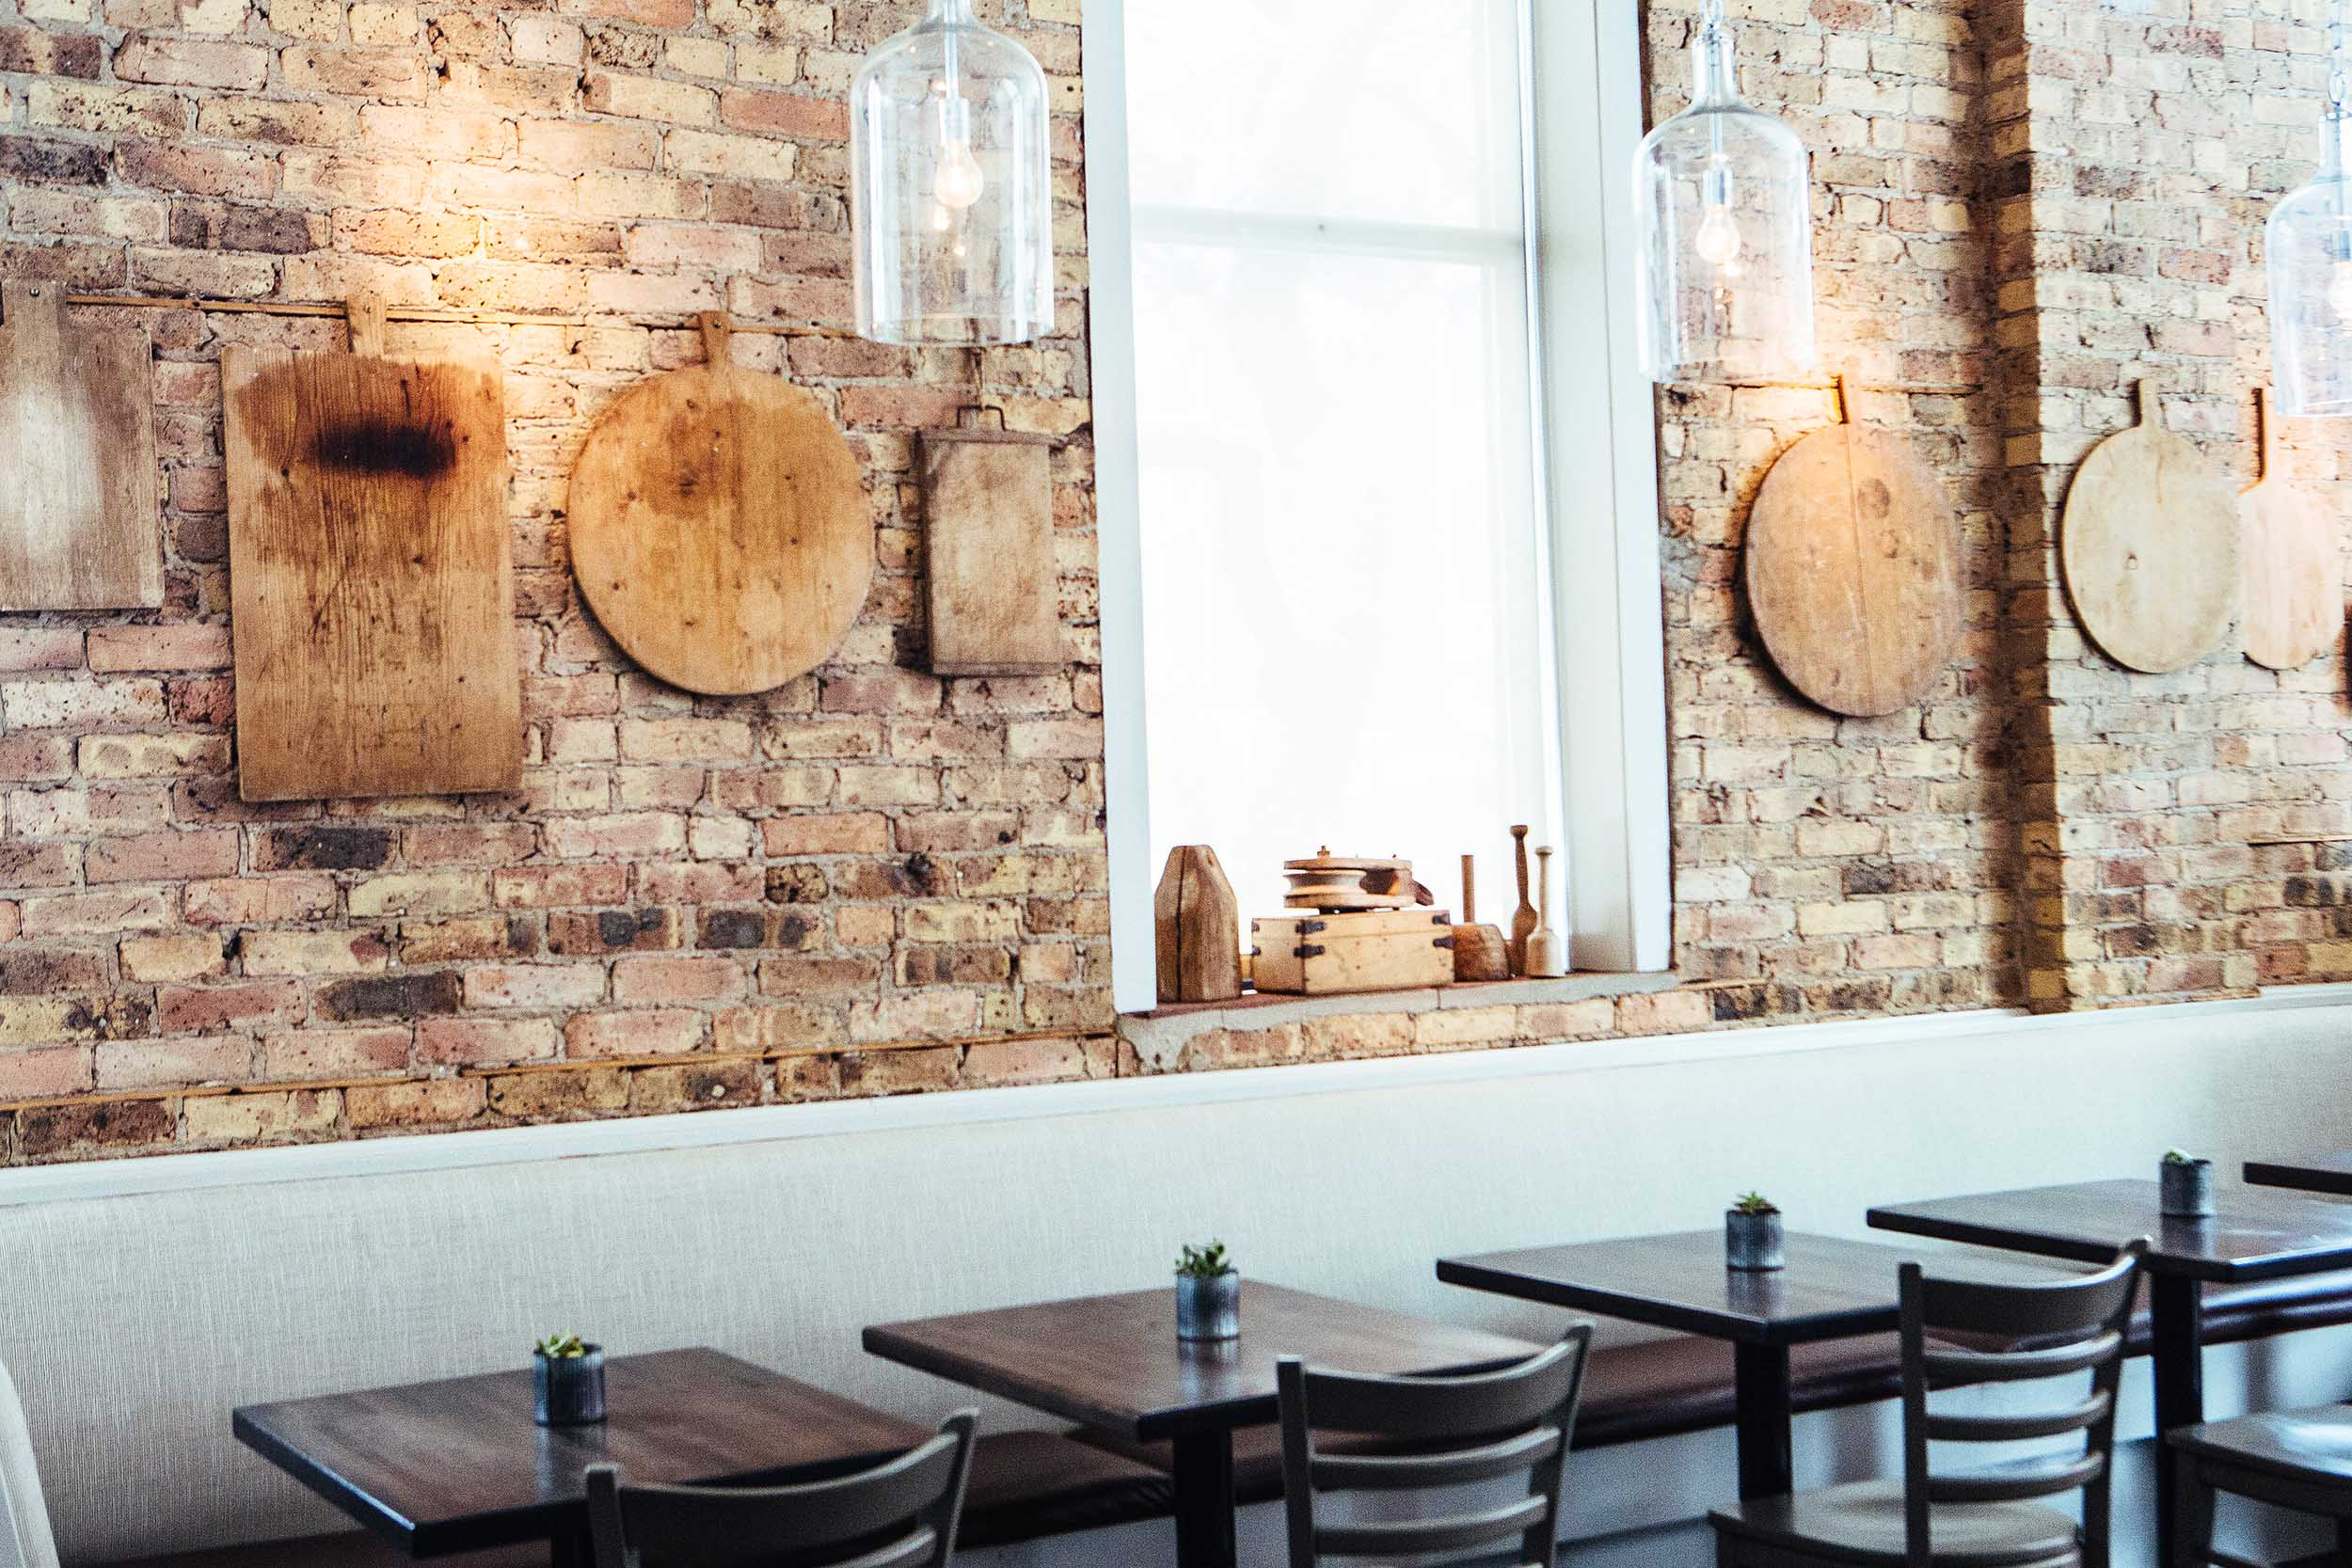 Leo_Designs_Chicago_interior_design_white_oak_tavern5.jpg